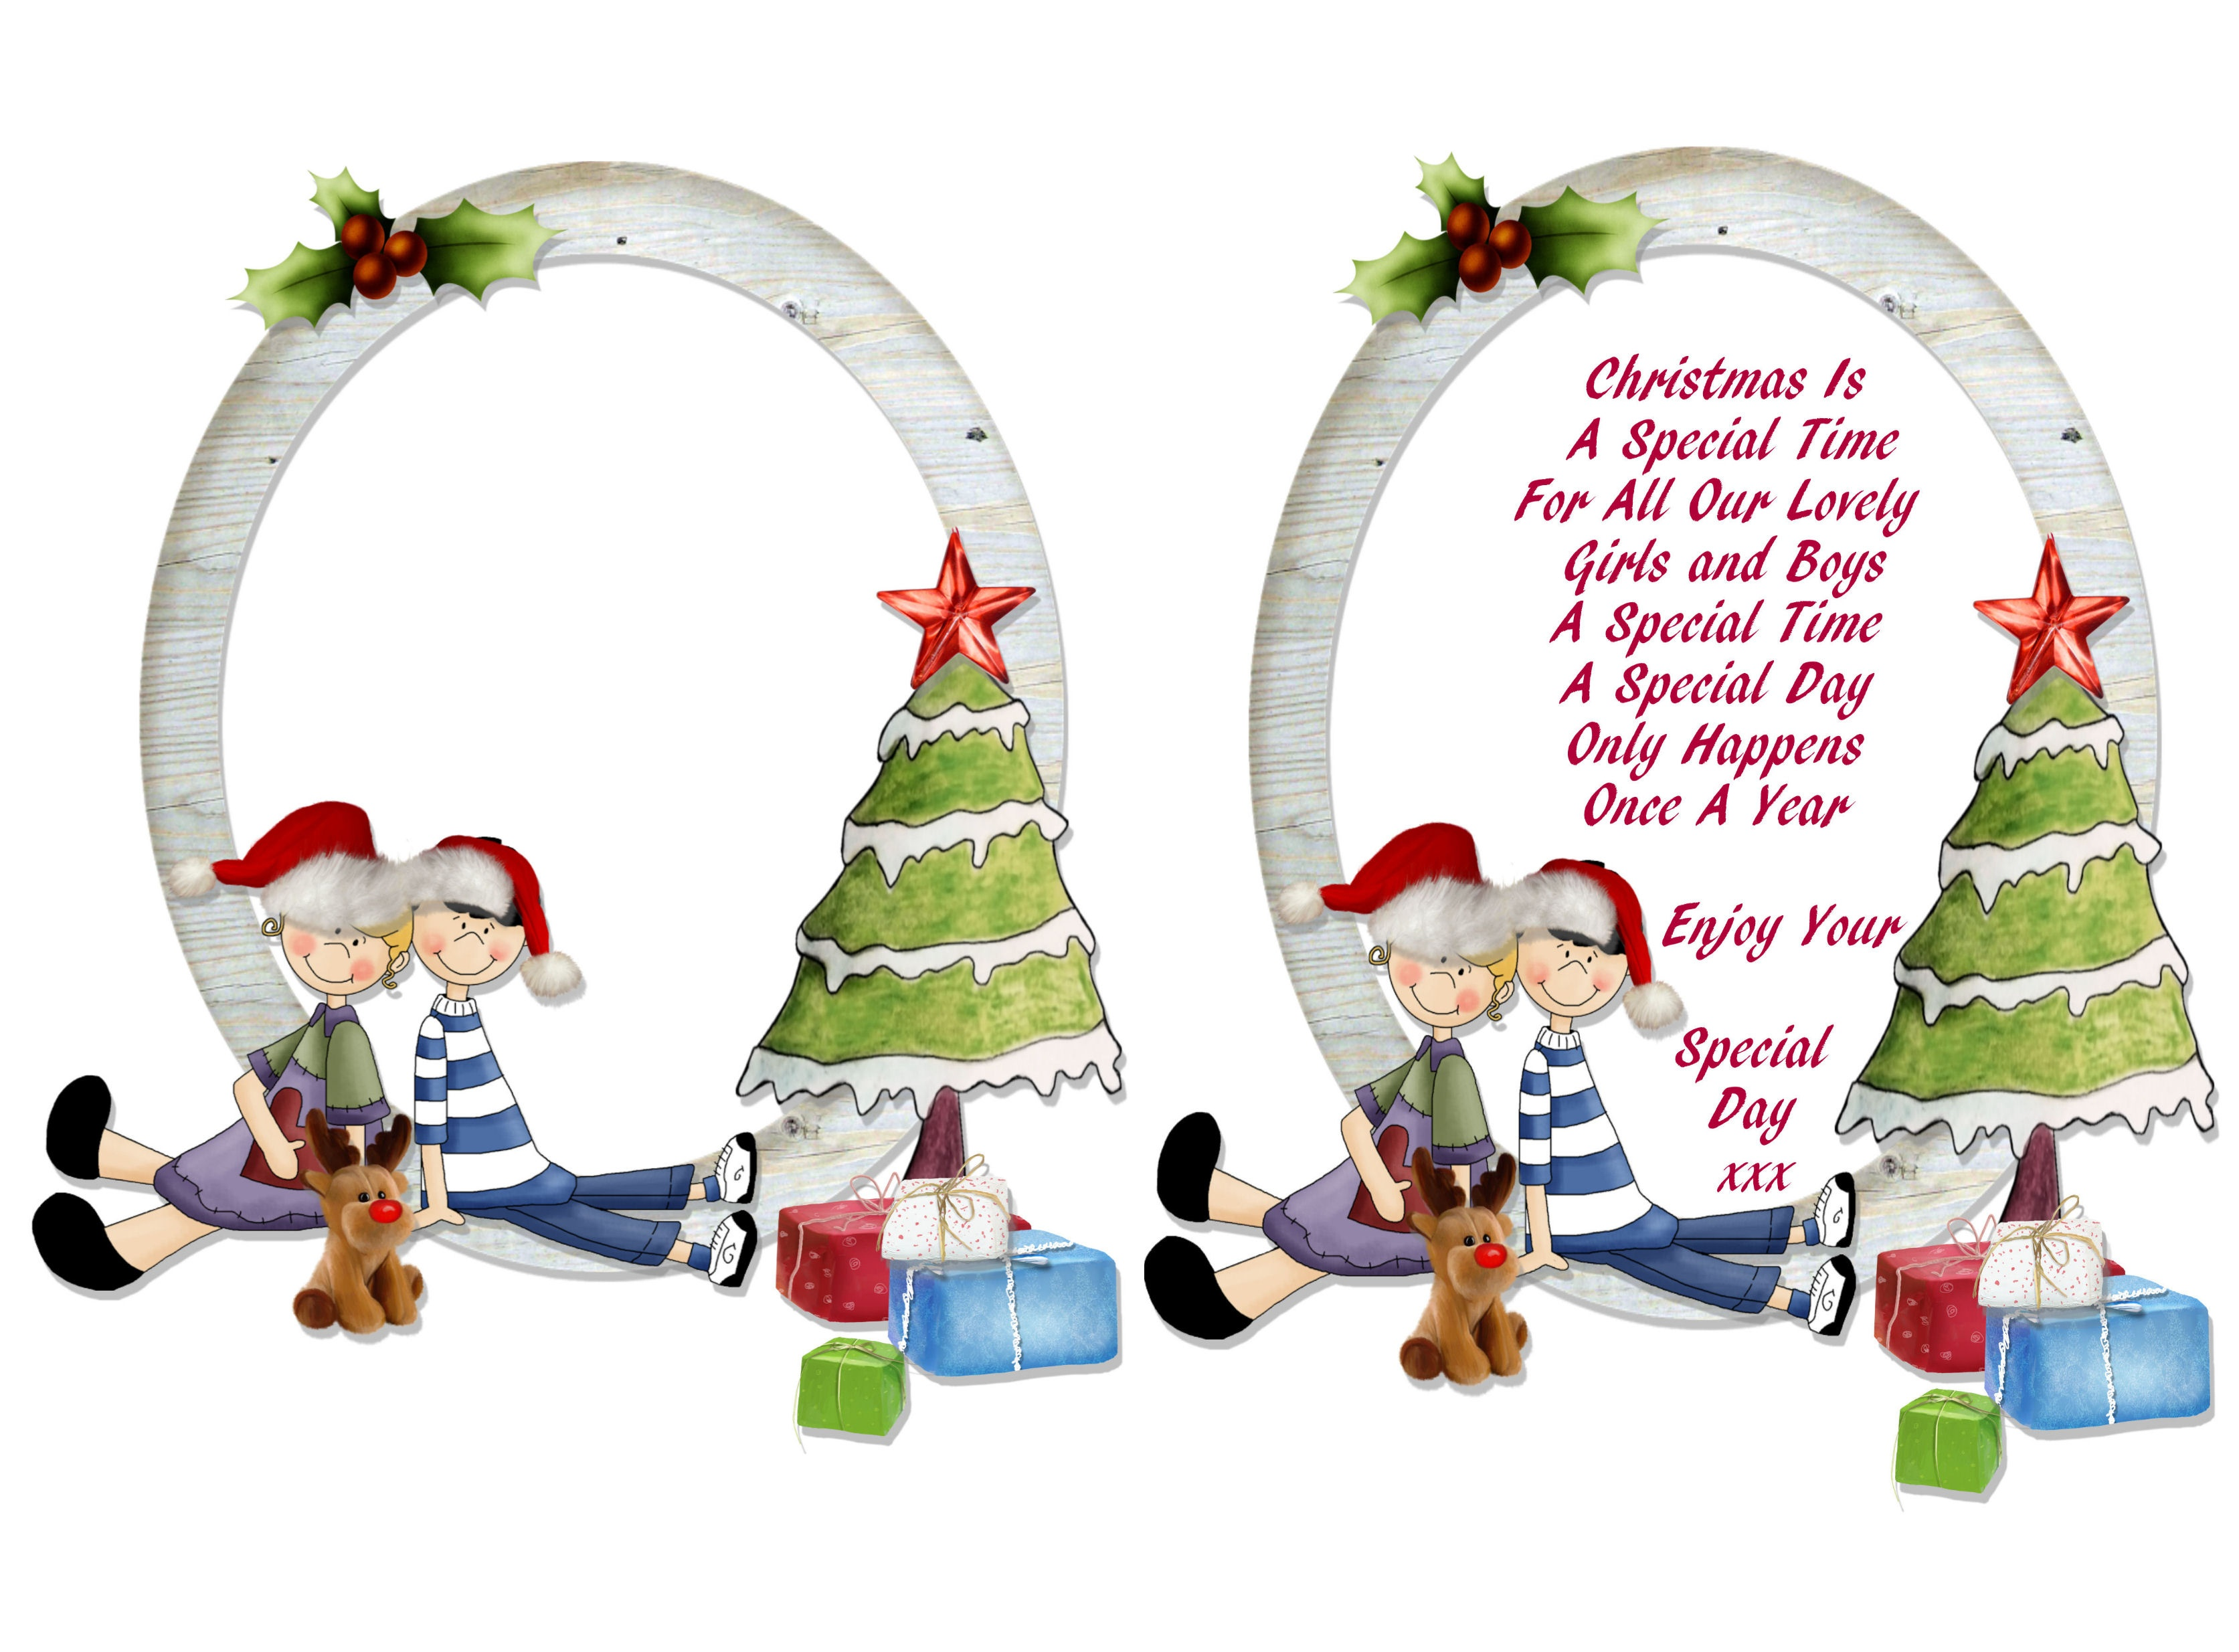 Christmas Cards For Grandparents Free Printable – Festival Collections - Christmas Cards For Grandparents Free Printable